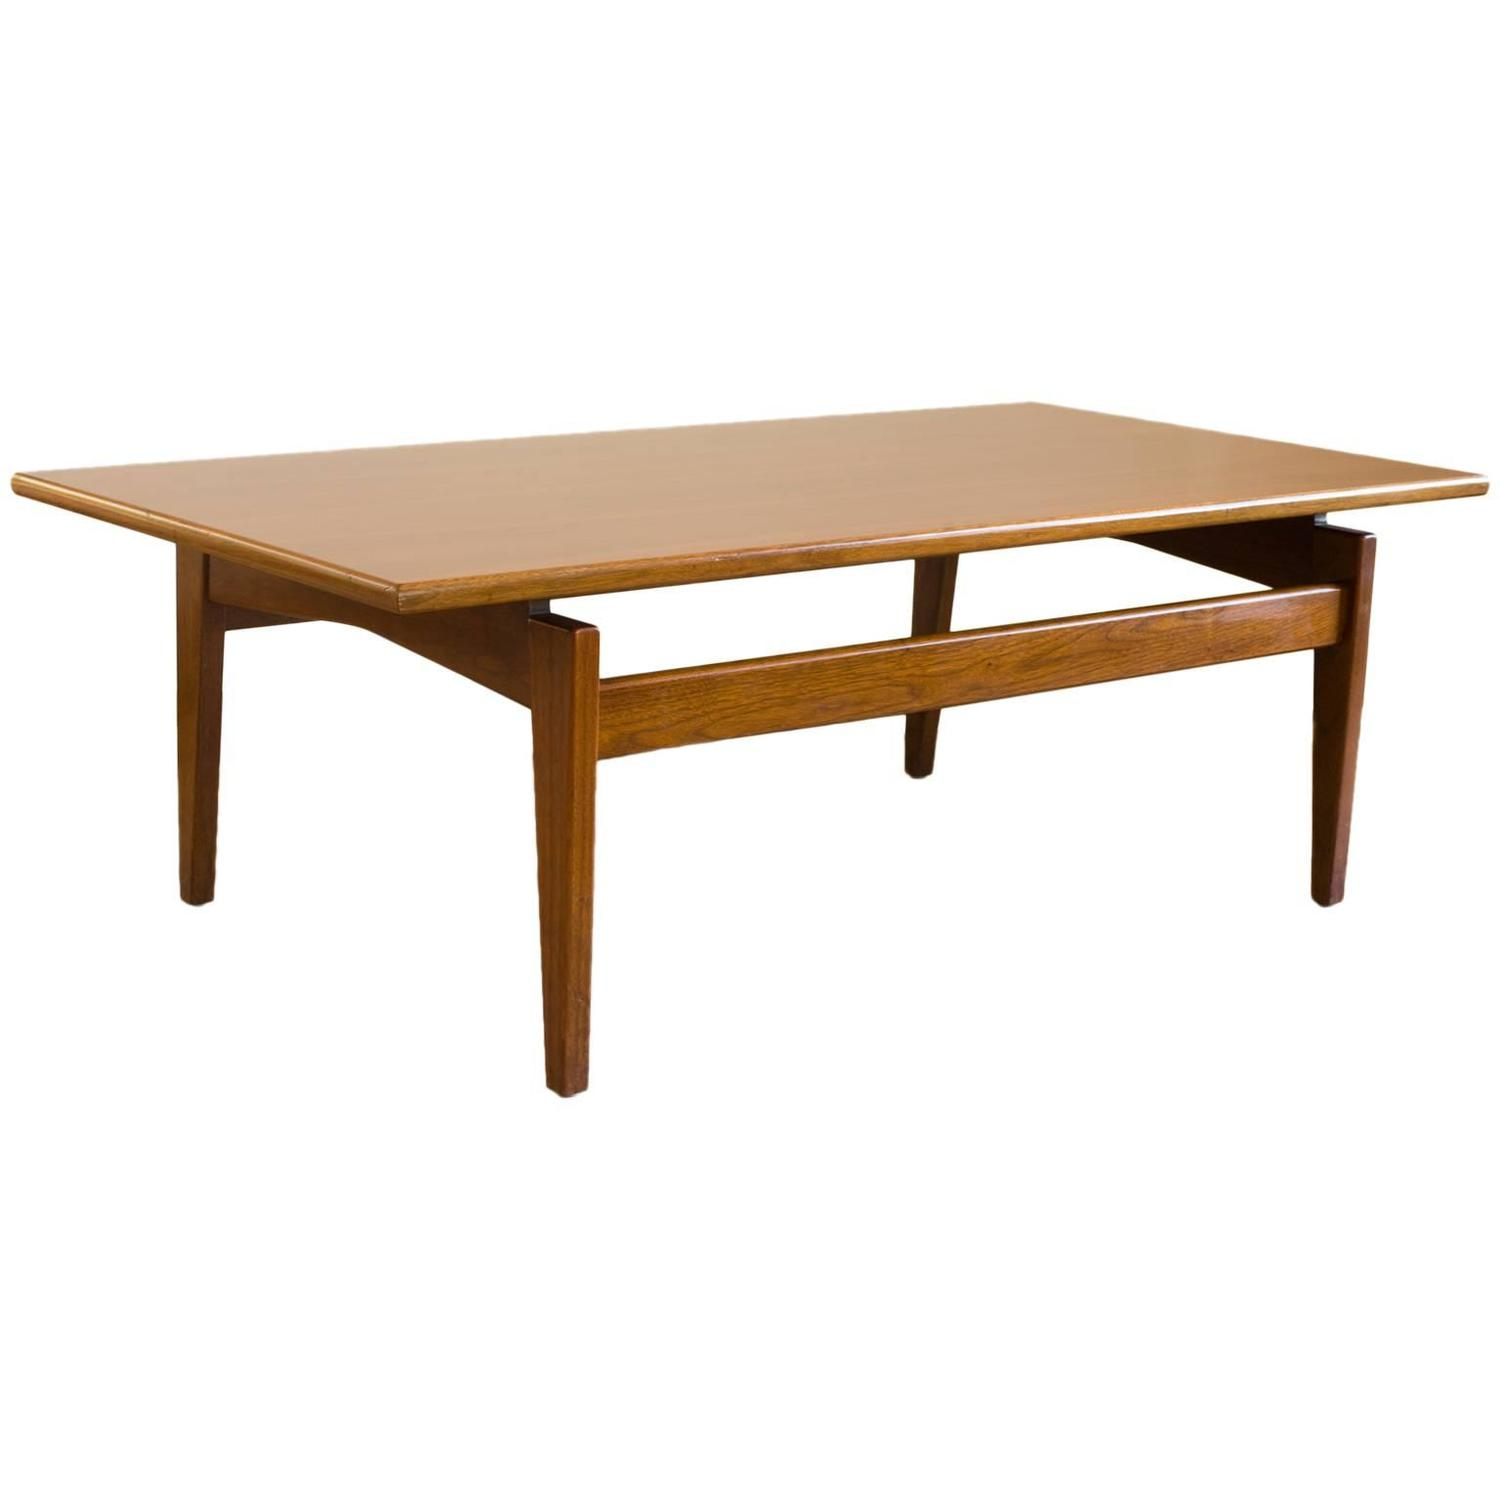 Jens Risom Walnut Floating Coffee Table with Sculptural Base at